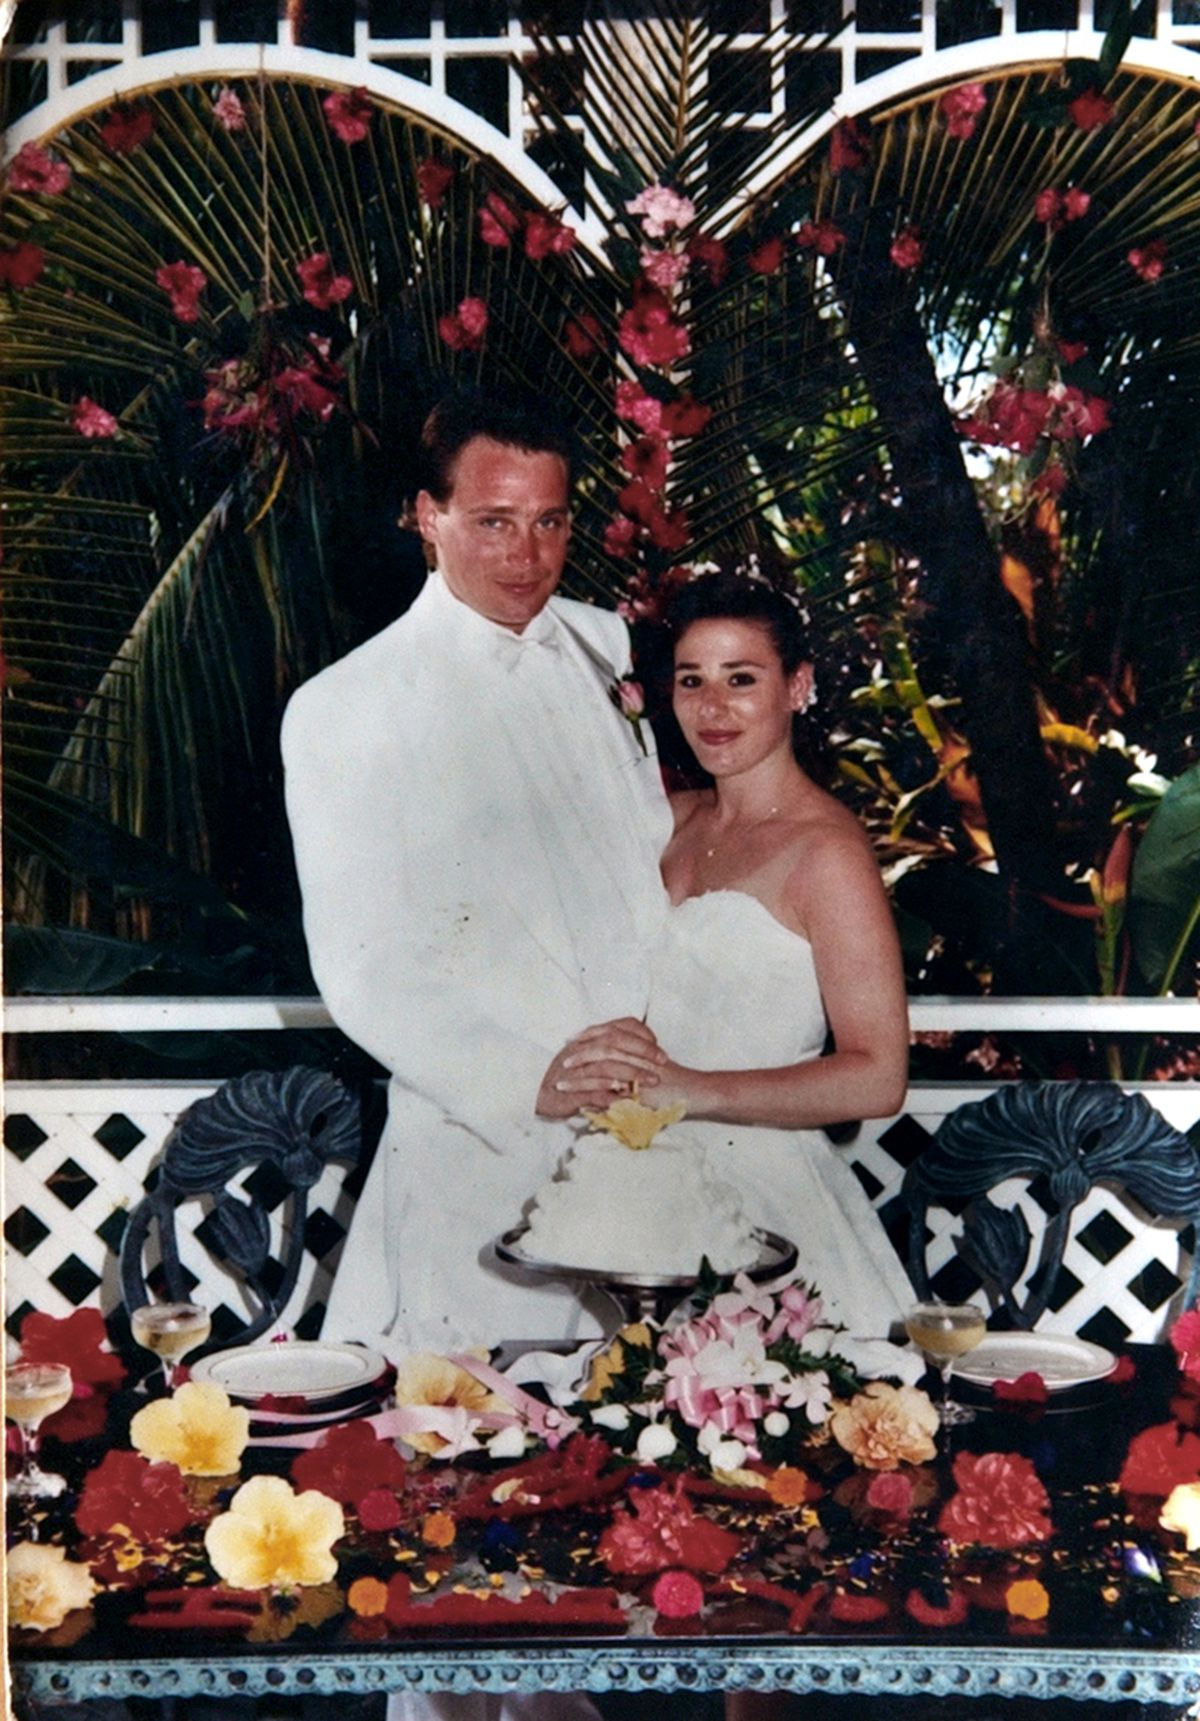 Craig and Lisa Stebic's wedding photo on April 6, 1993. | Photo provided by Craig Stebic in 2007